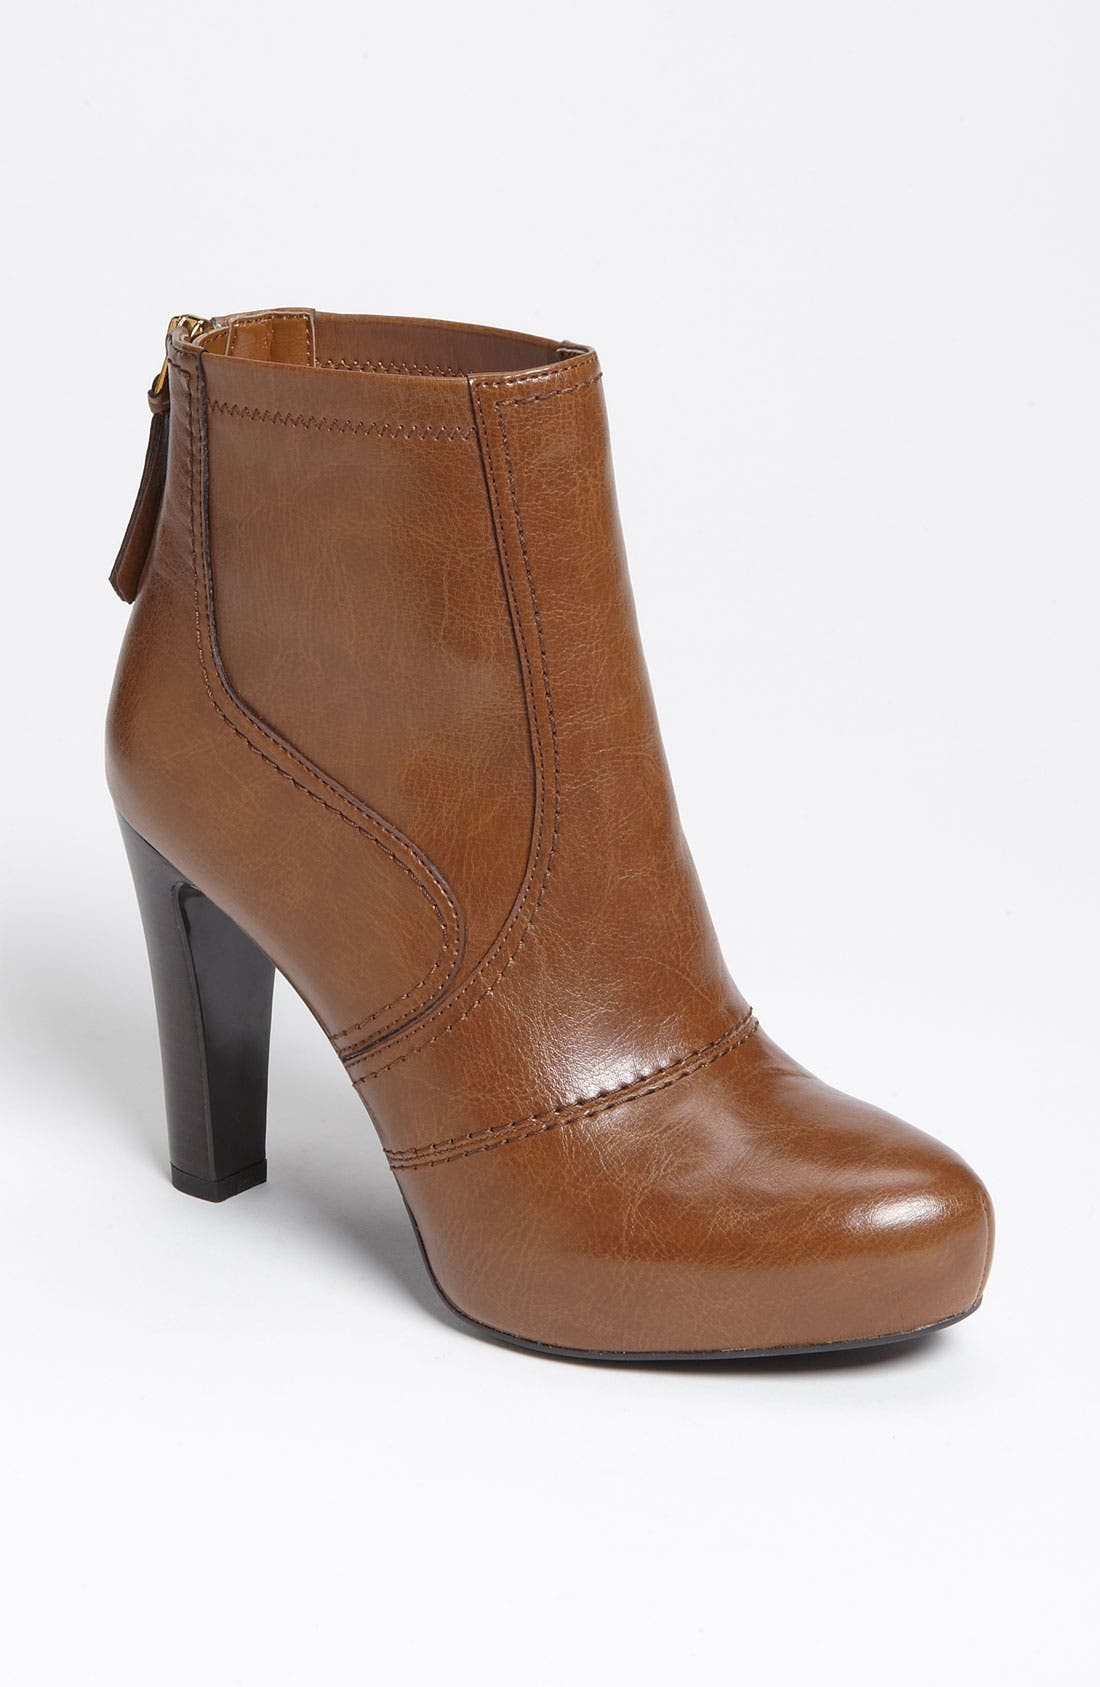 Alternate Image 1 Selected - Franco Sarto 'Learn' Boot (Special Purchase)